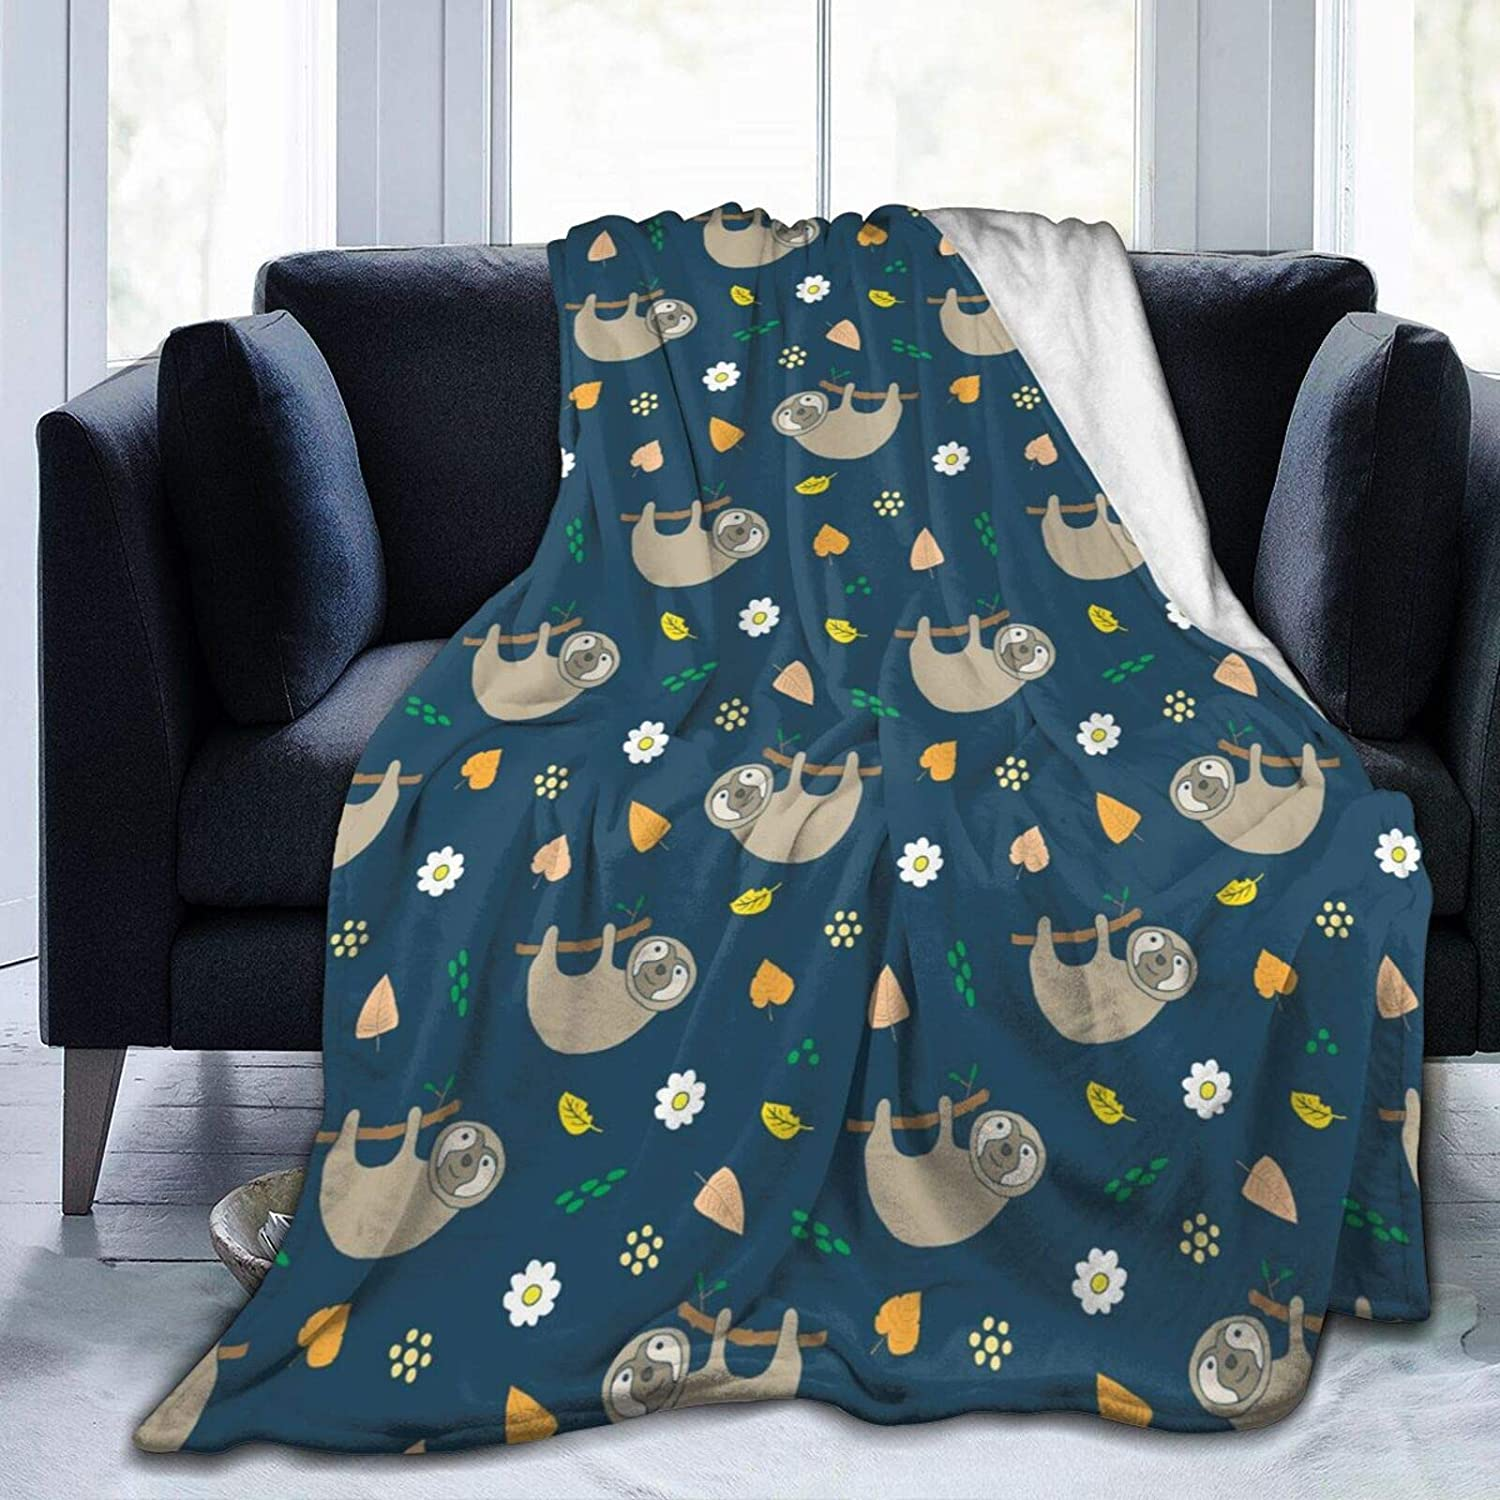 QSmx Fleece Blankets,Cute Sloth Cartoon Doodles Animal Super Soft Fuzzy Blankets and Throws,Warm Flannel Dog Blanket Outdoor Travel Picnic Blankets for Adults Kids,Twin Size 60x50 inch